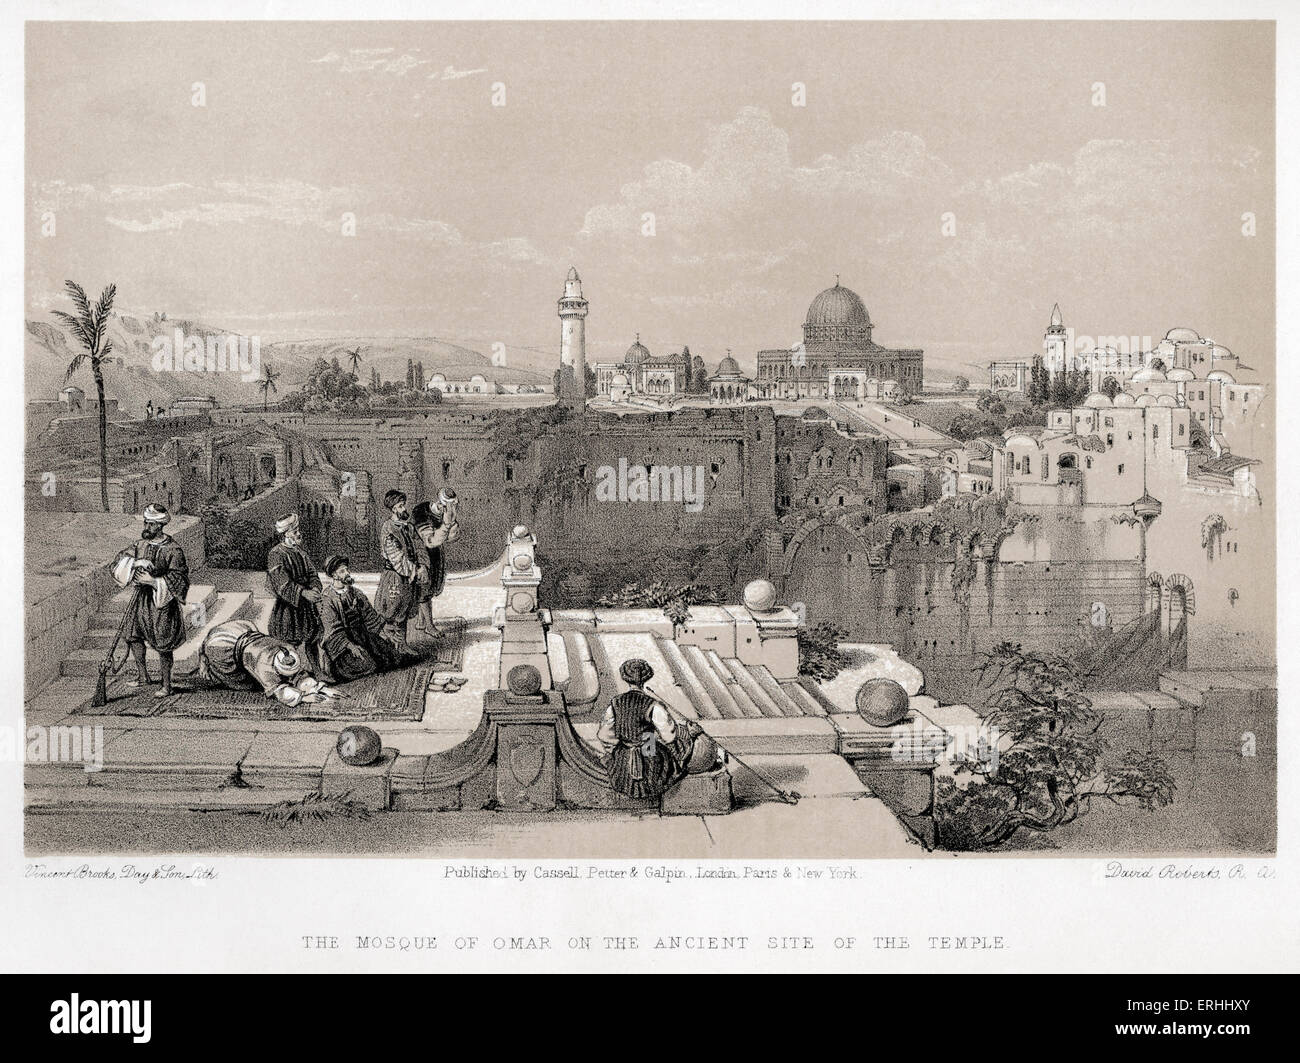 The Mosque of Omar on the ancient site of Solomon's  temple in Jerusalem by David Roberts. Lithographs of the - Stock Image